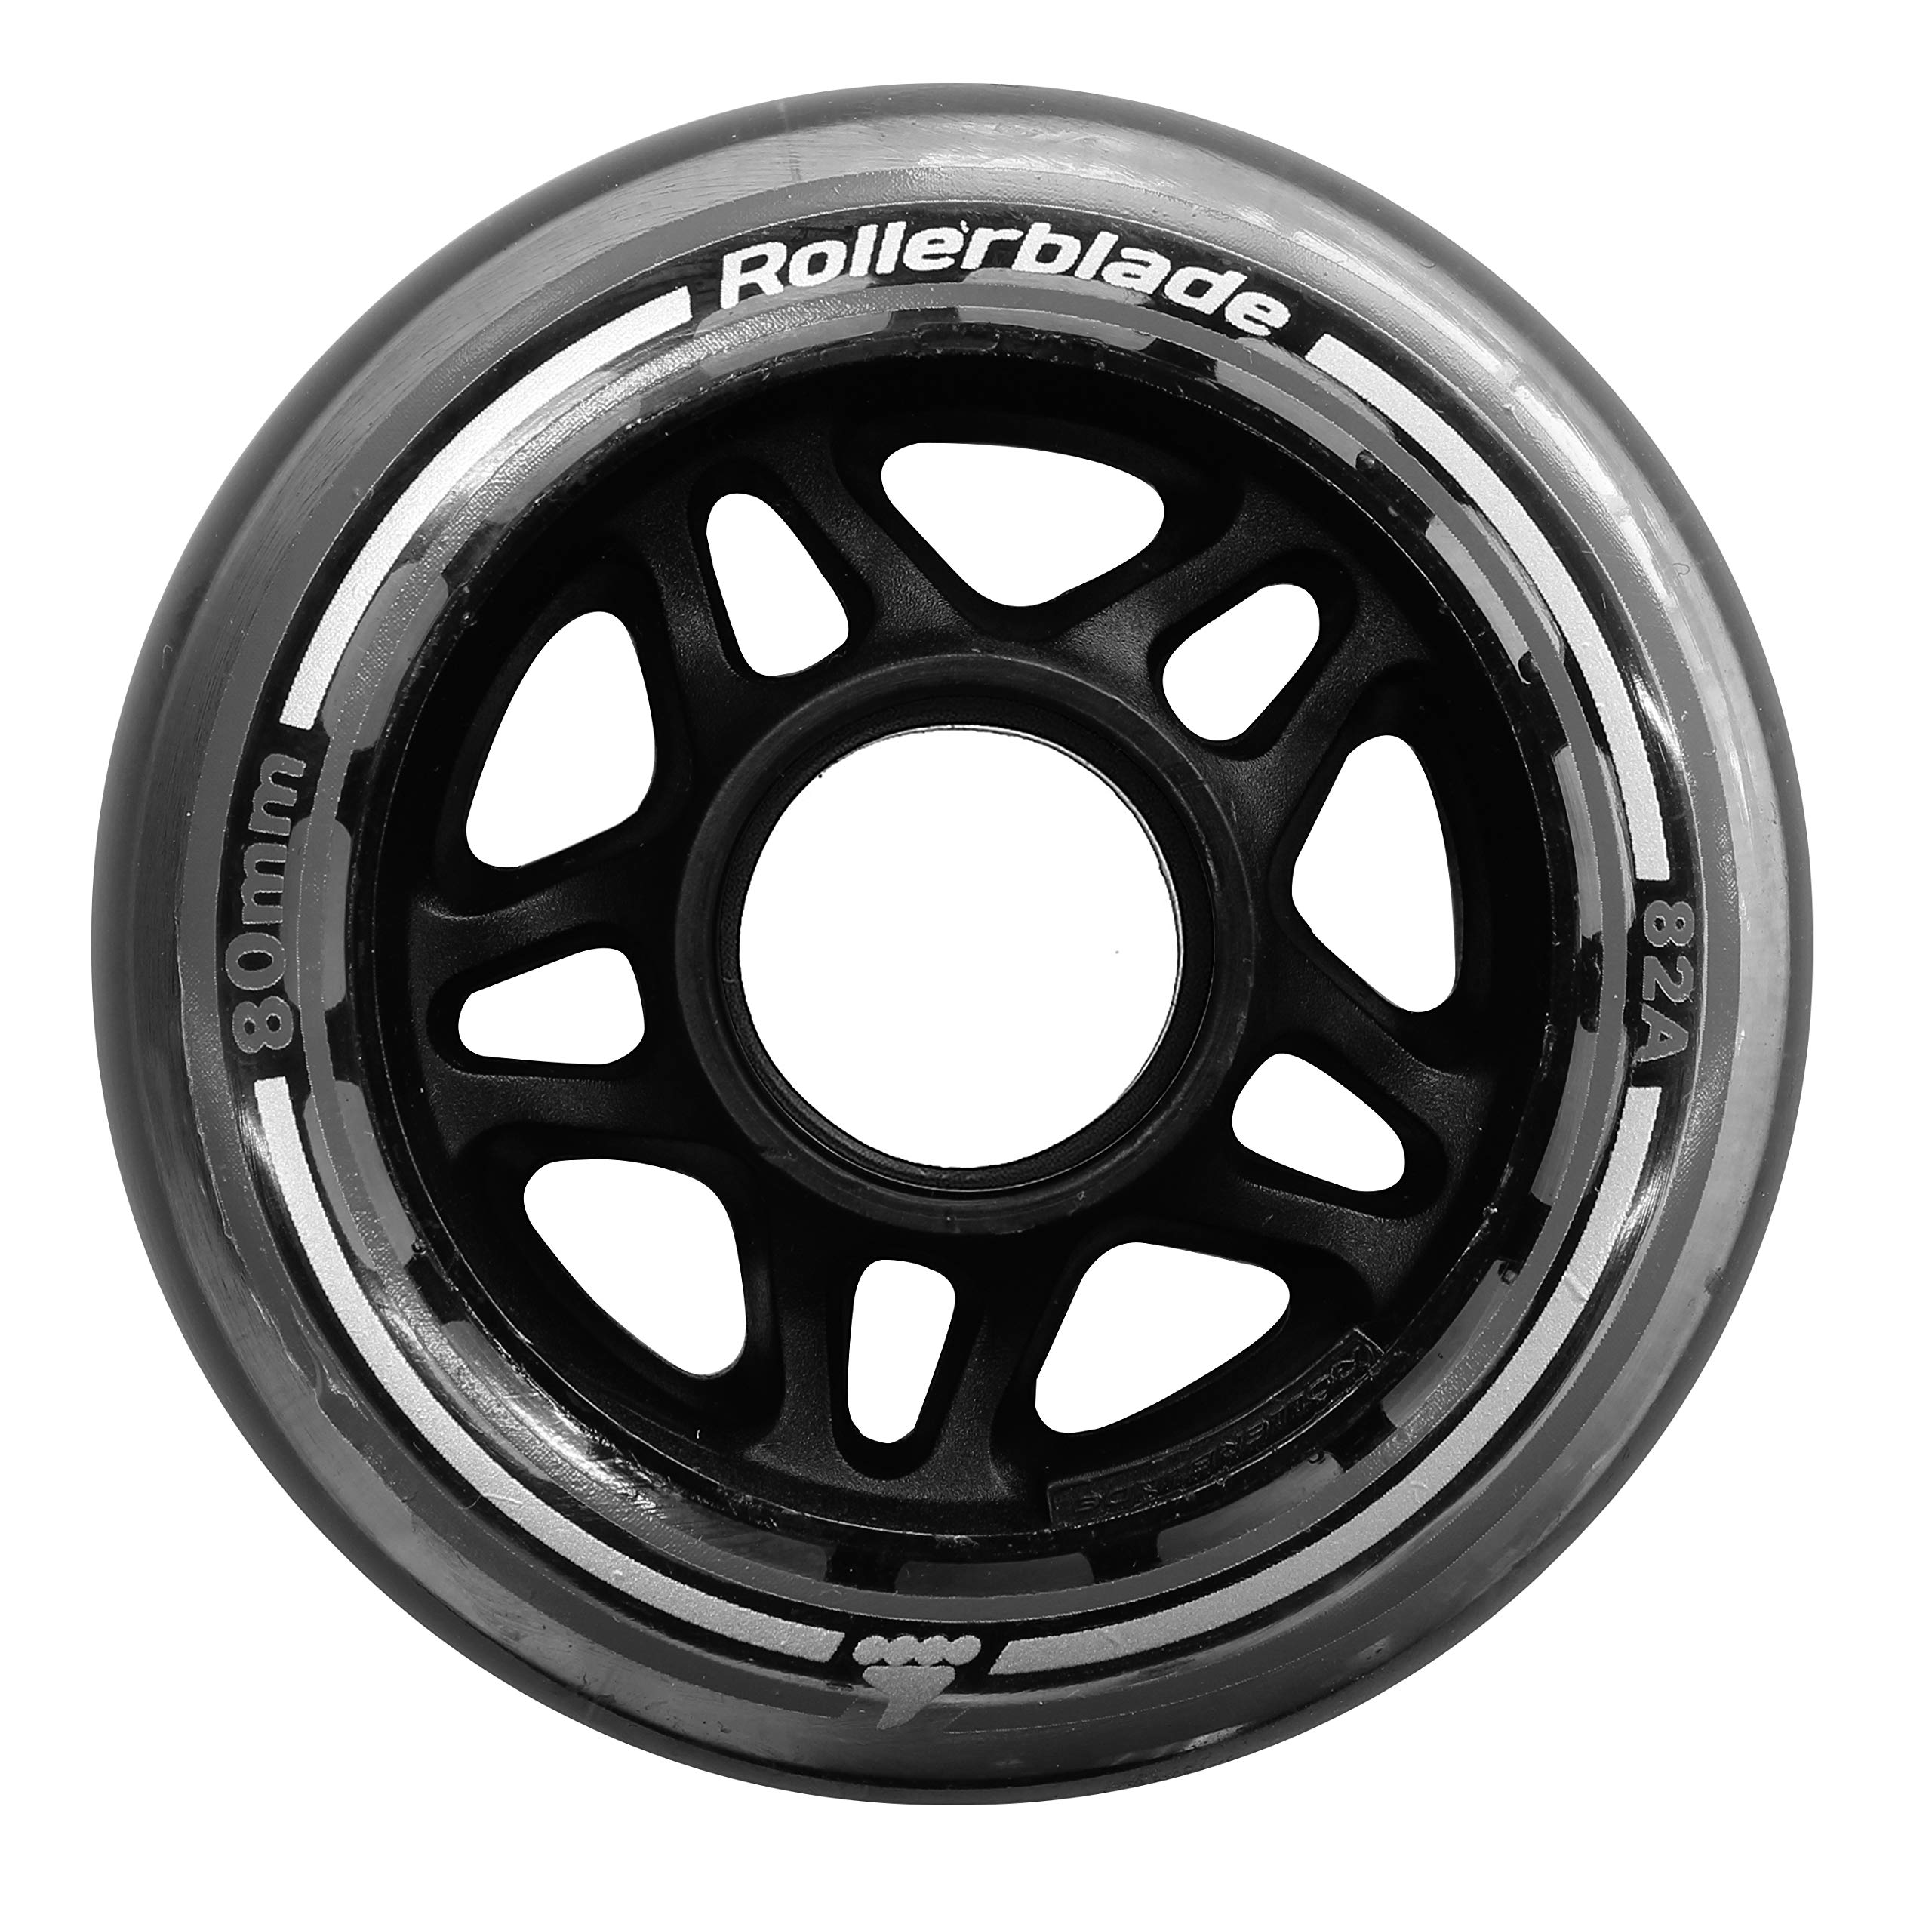 Rollerblade 80mm 82A Wheels, 8 Pack, Clear, US Unisex ST by Rollerblade